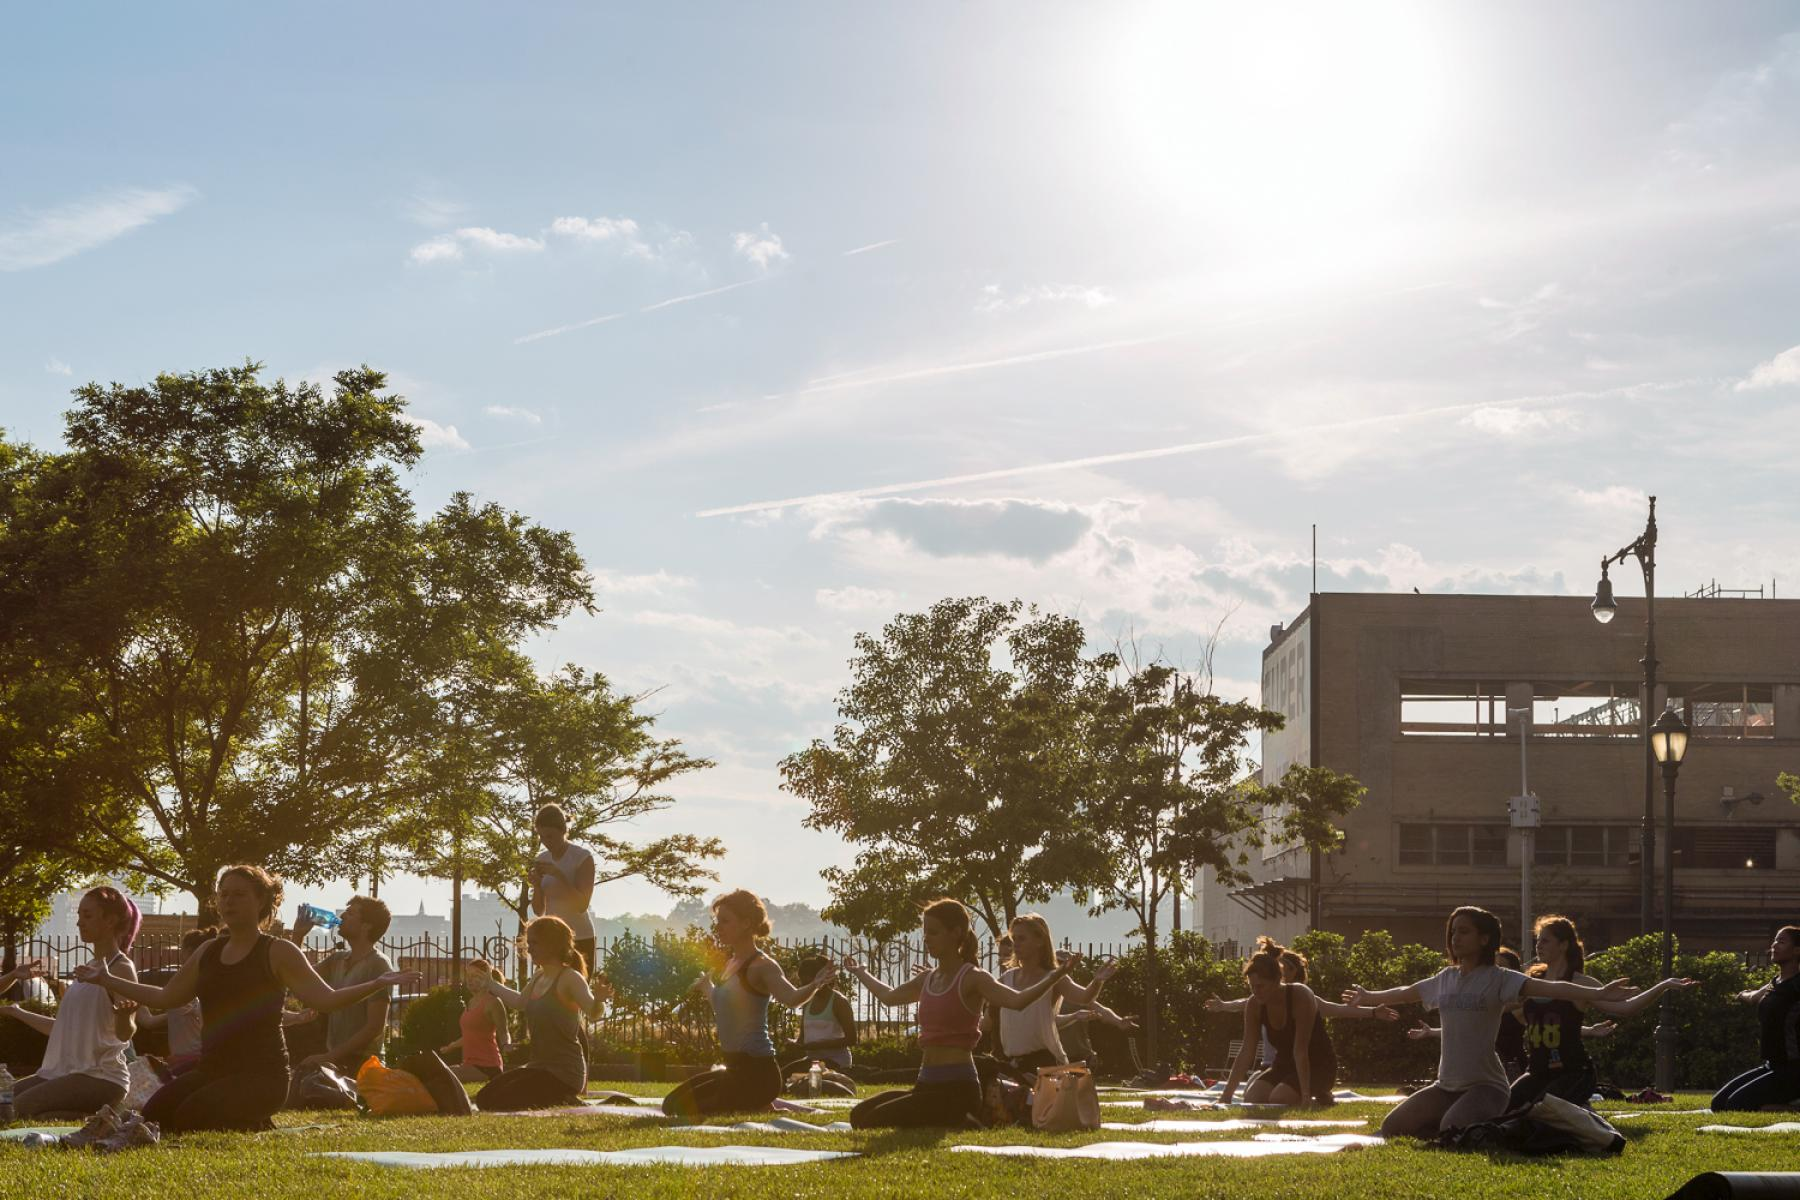 The Meatpacking District's Sweat Sessions Wellness Schedule Tuesday, August 15